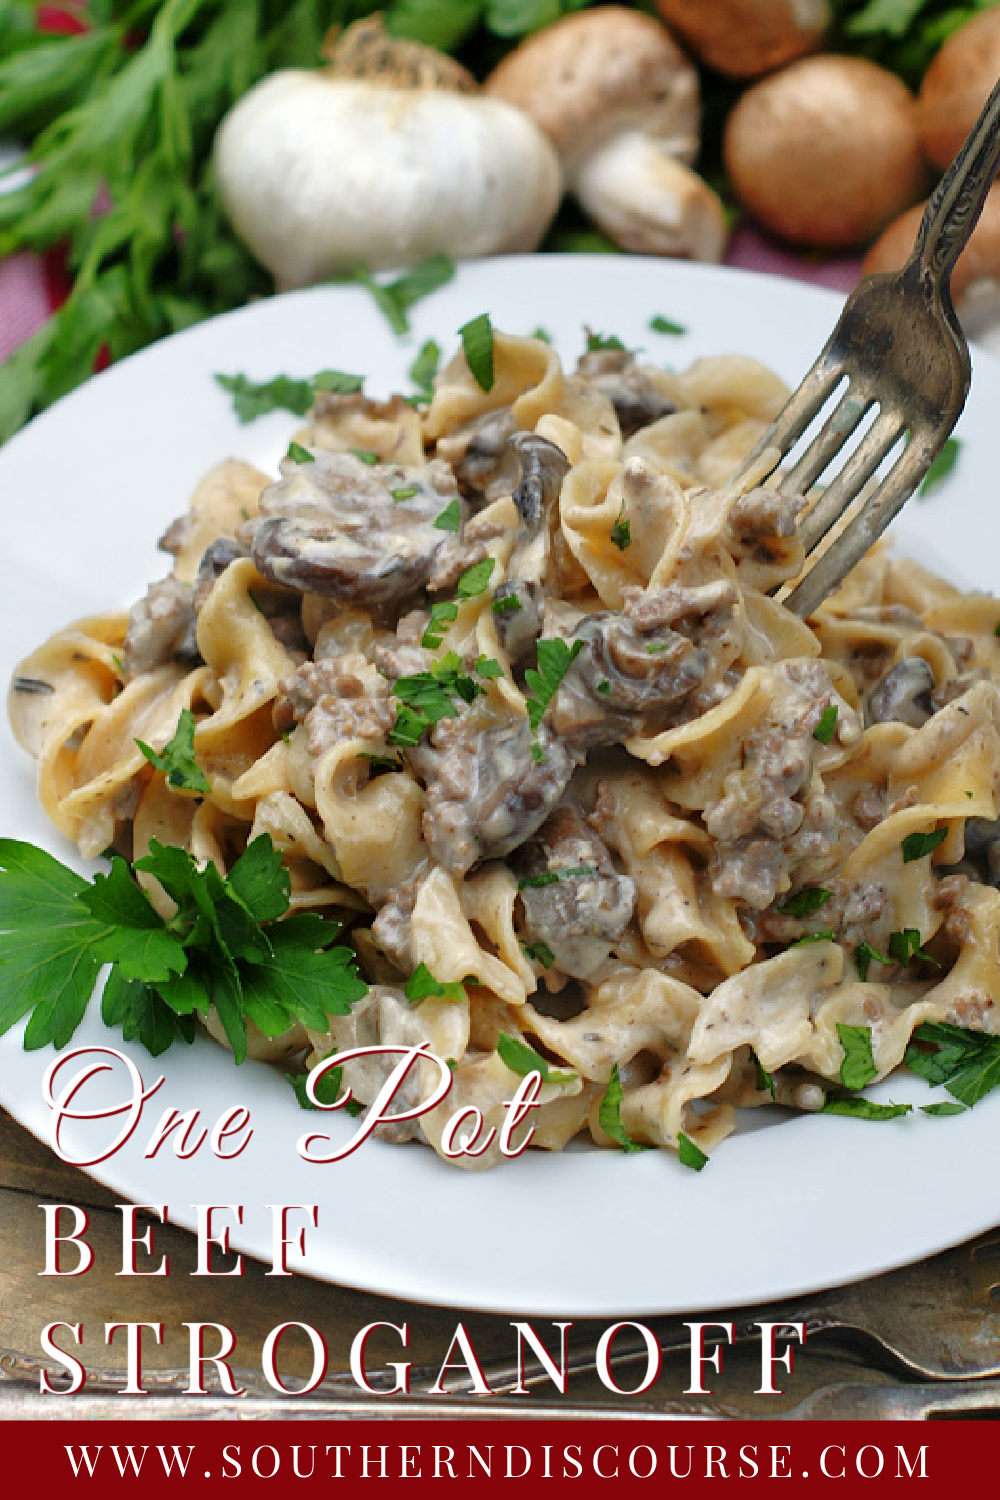 the classic Stroganoff flavors you love in an easy one pot recipe! Luscious sour cream sauce, savory ground beef & mushrooms, silky egg noodles make every night a comfort food night!